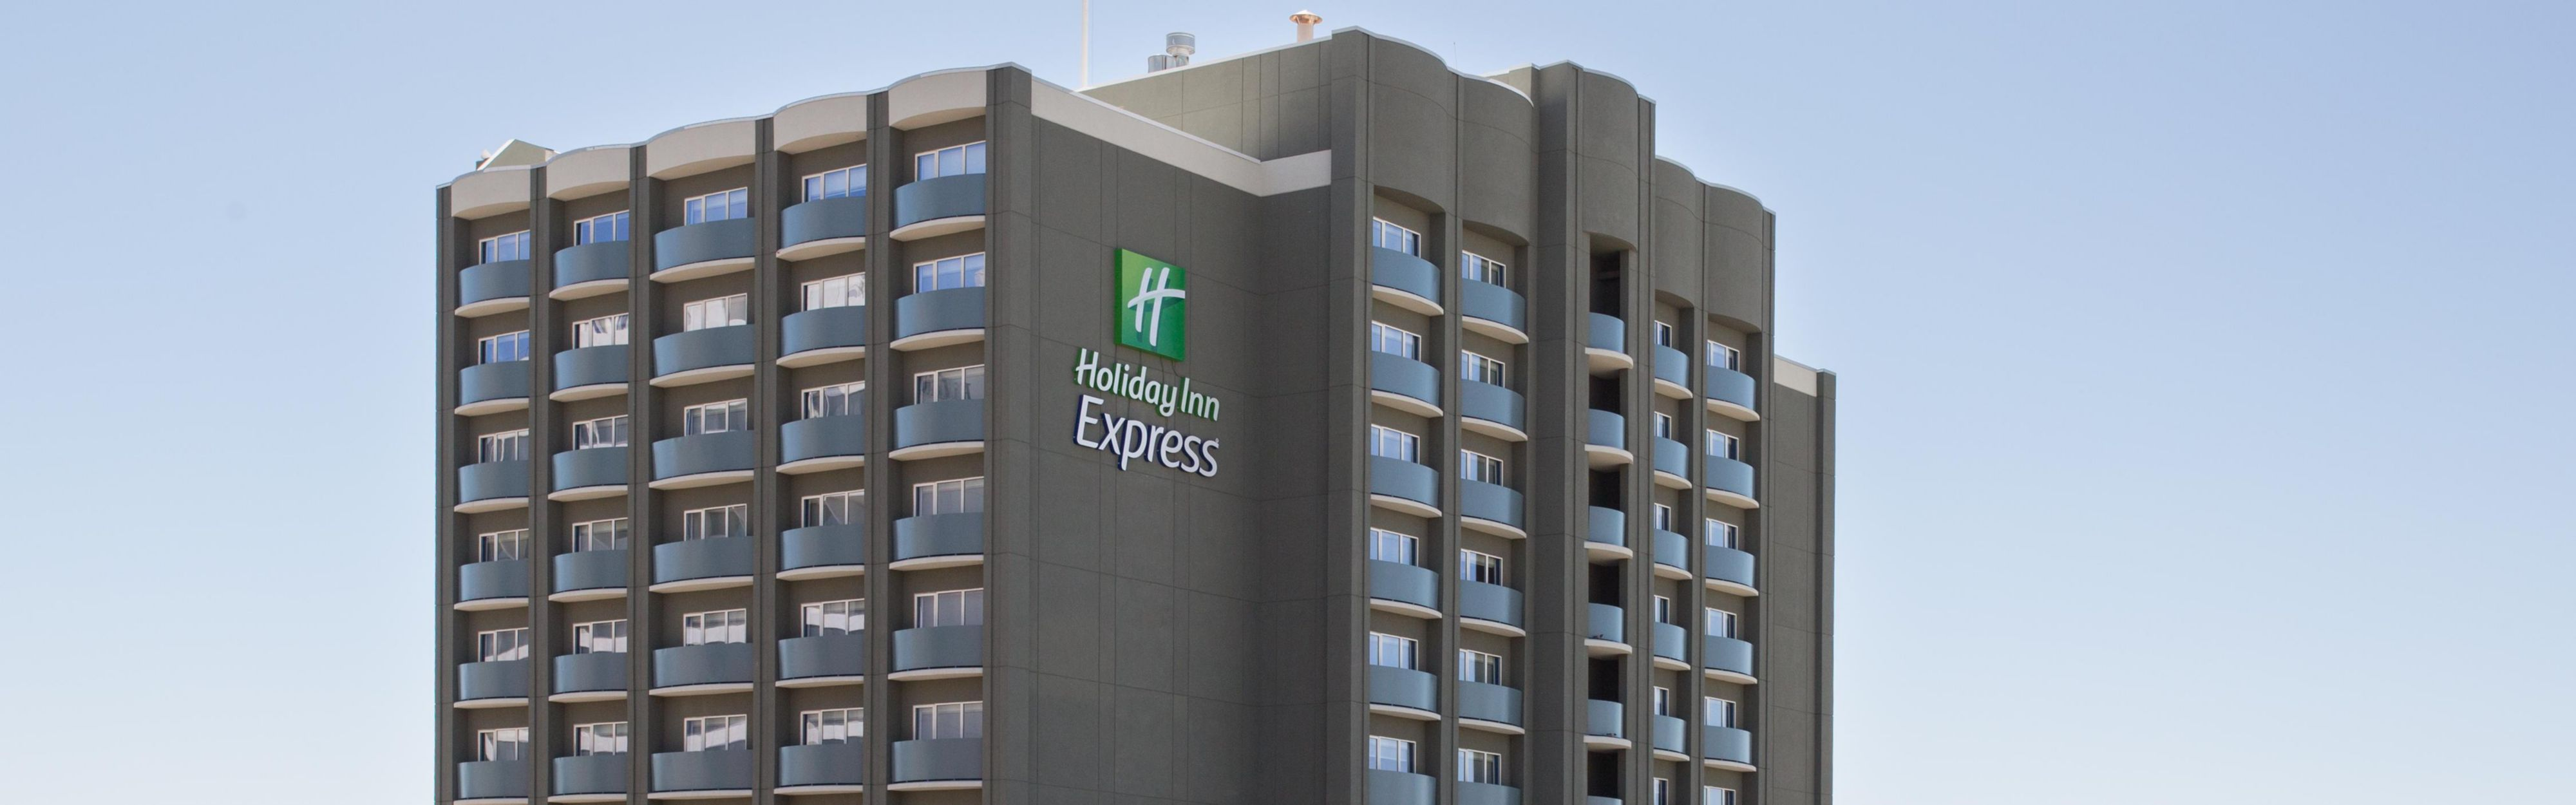 Holiday Inn Express Bronx Nyc Stadium Area In Bronx Ny 10451